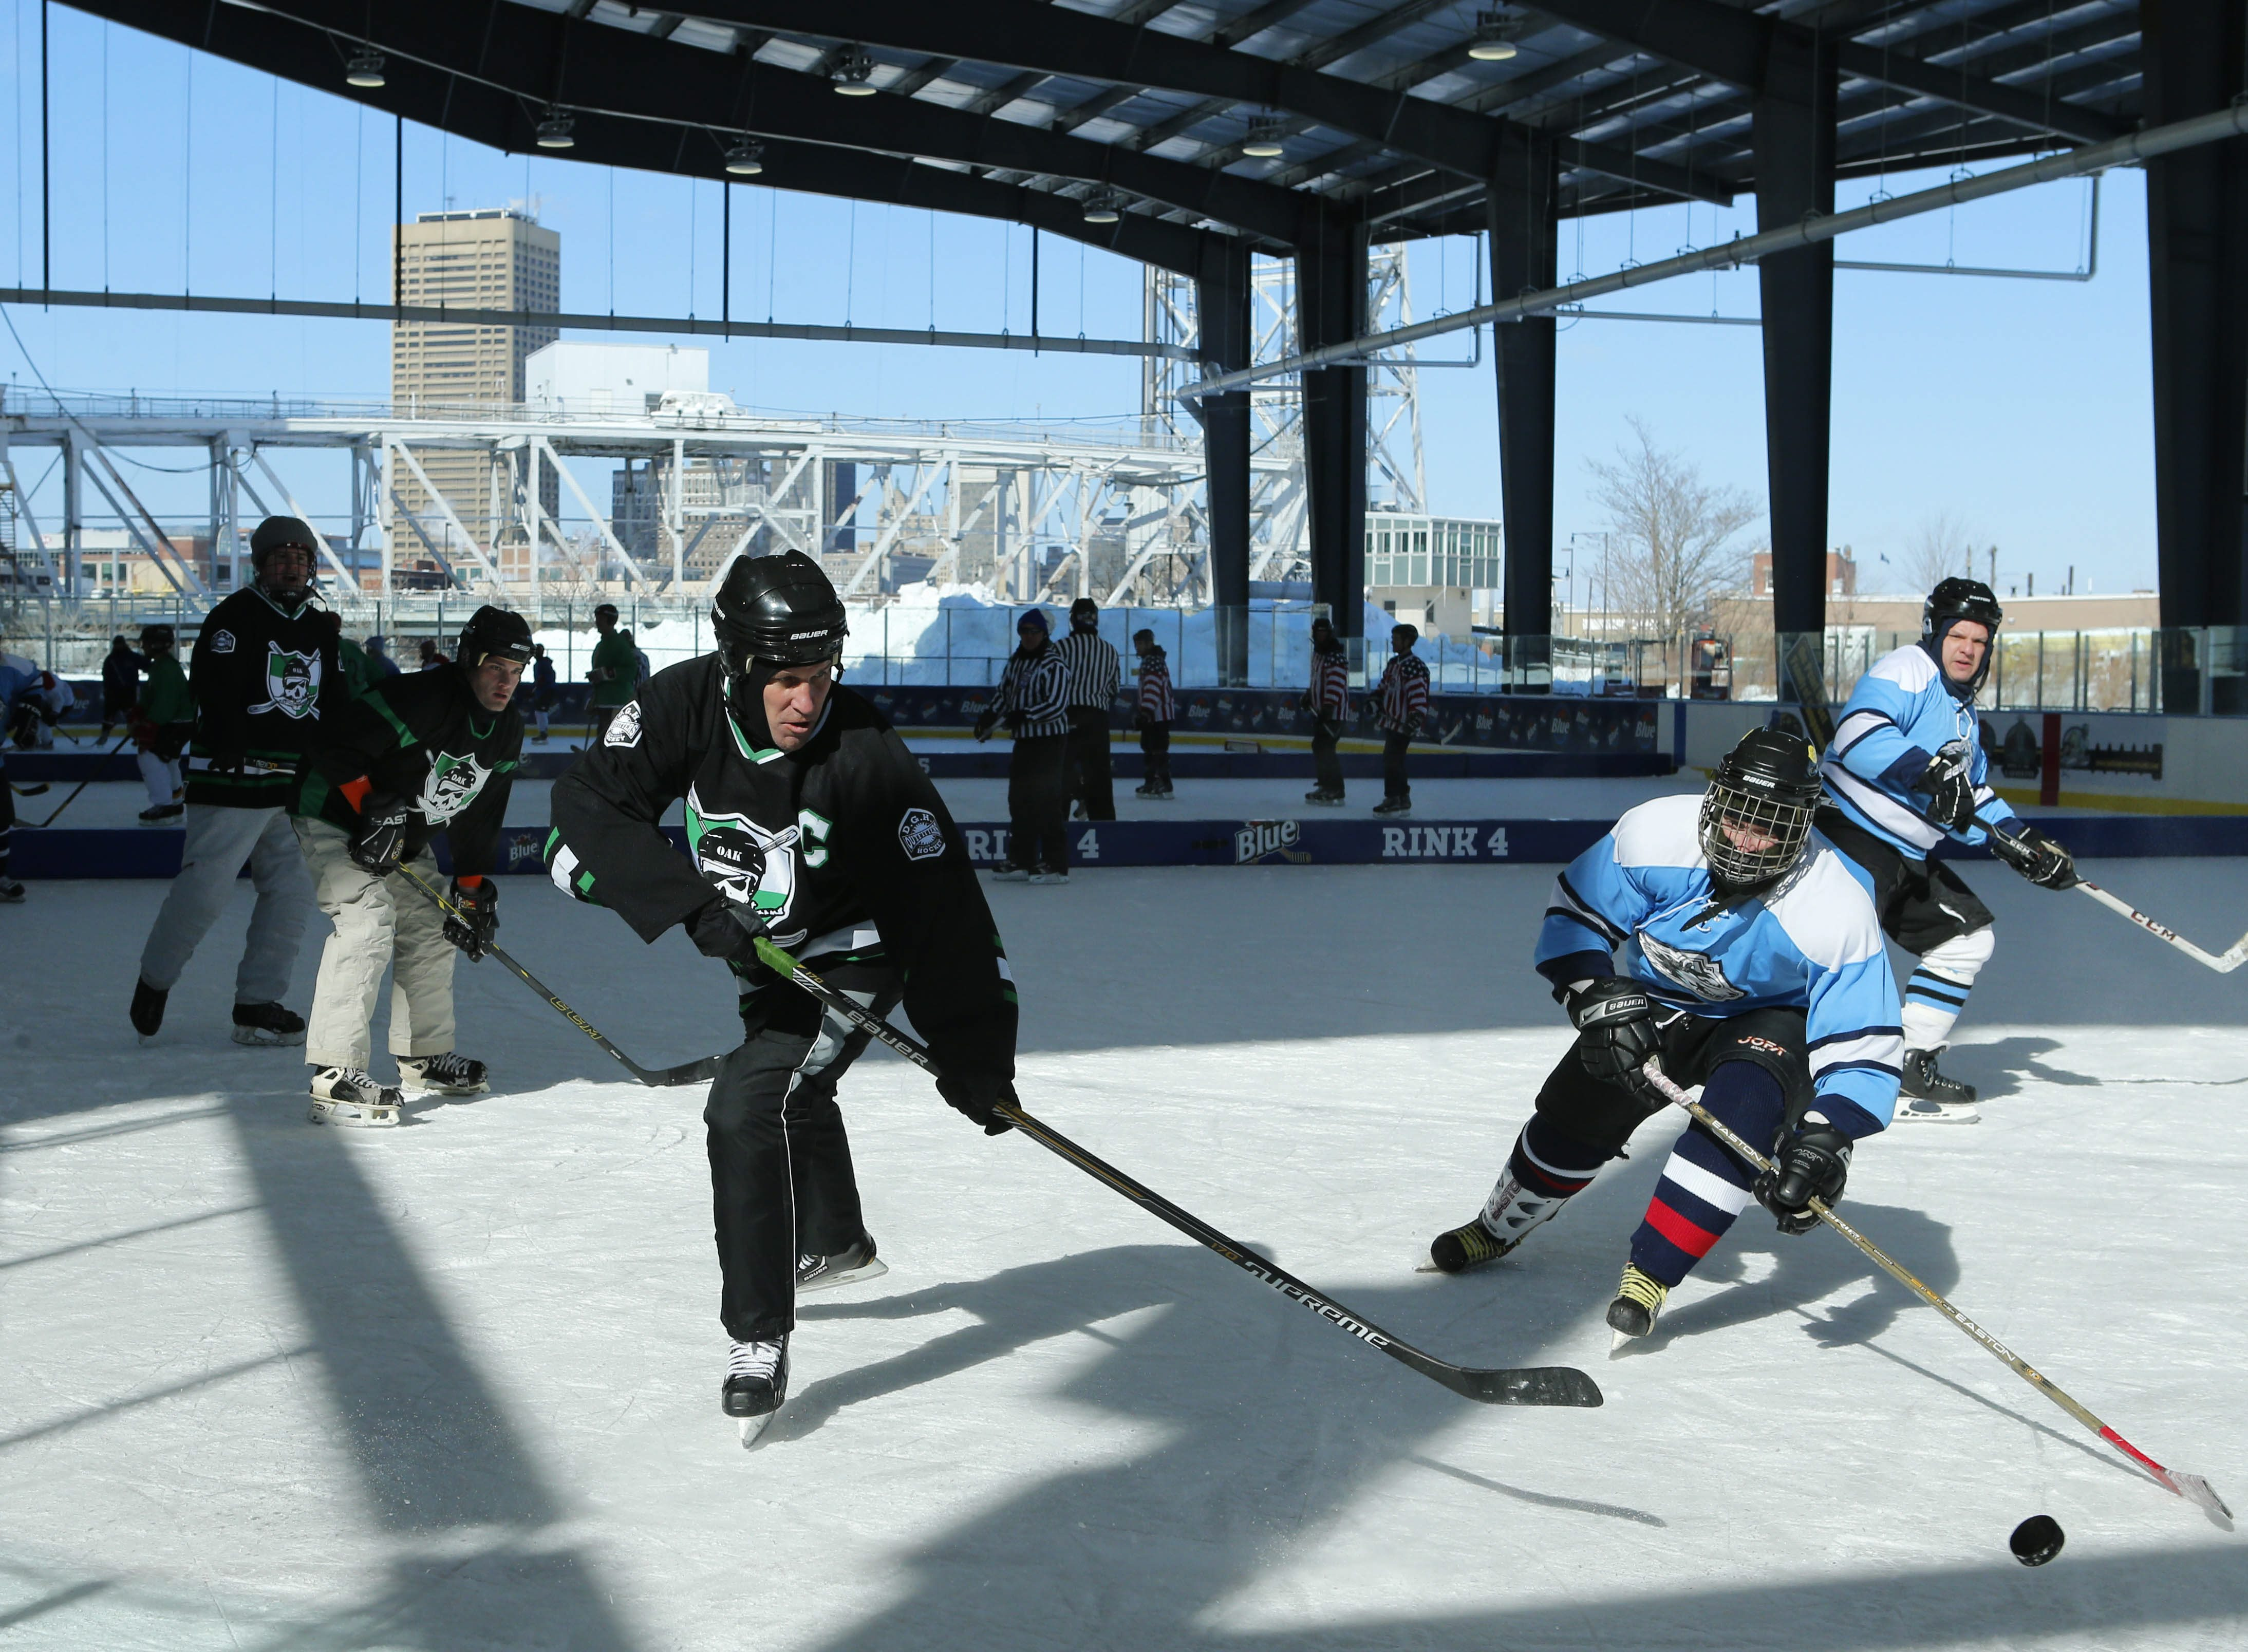 The Oakland Hitmen and the IceWolves-Cody compete during the 2015 Labatt Blue Buffalo Pond Hockey Tournament, also held at Buffalo RiverWorks. (Derek Gee/News file photo)